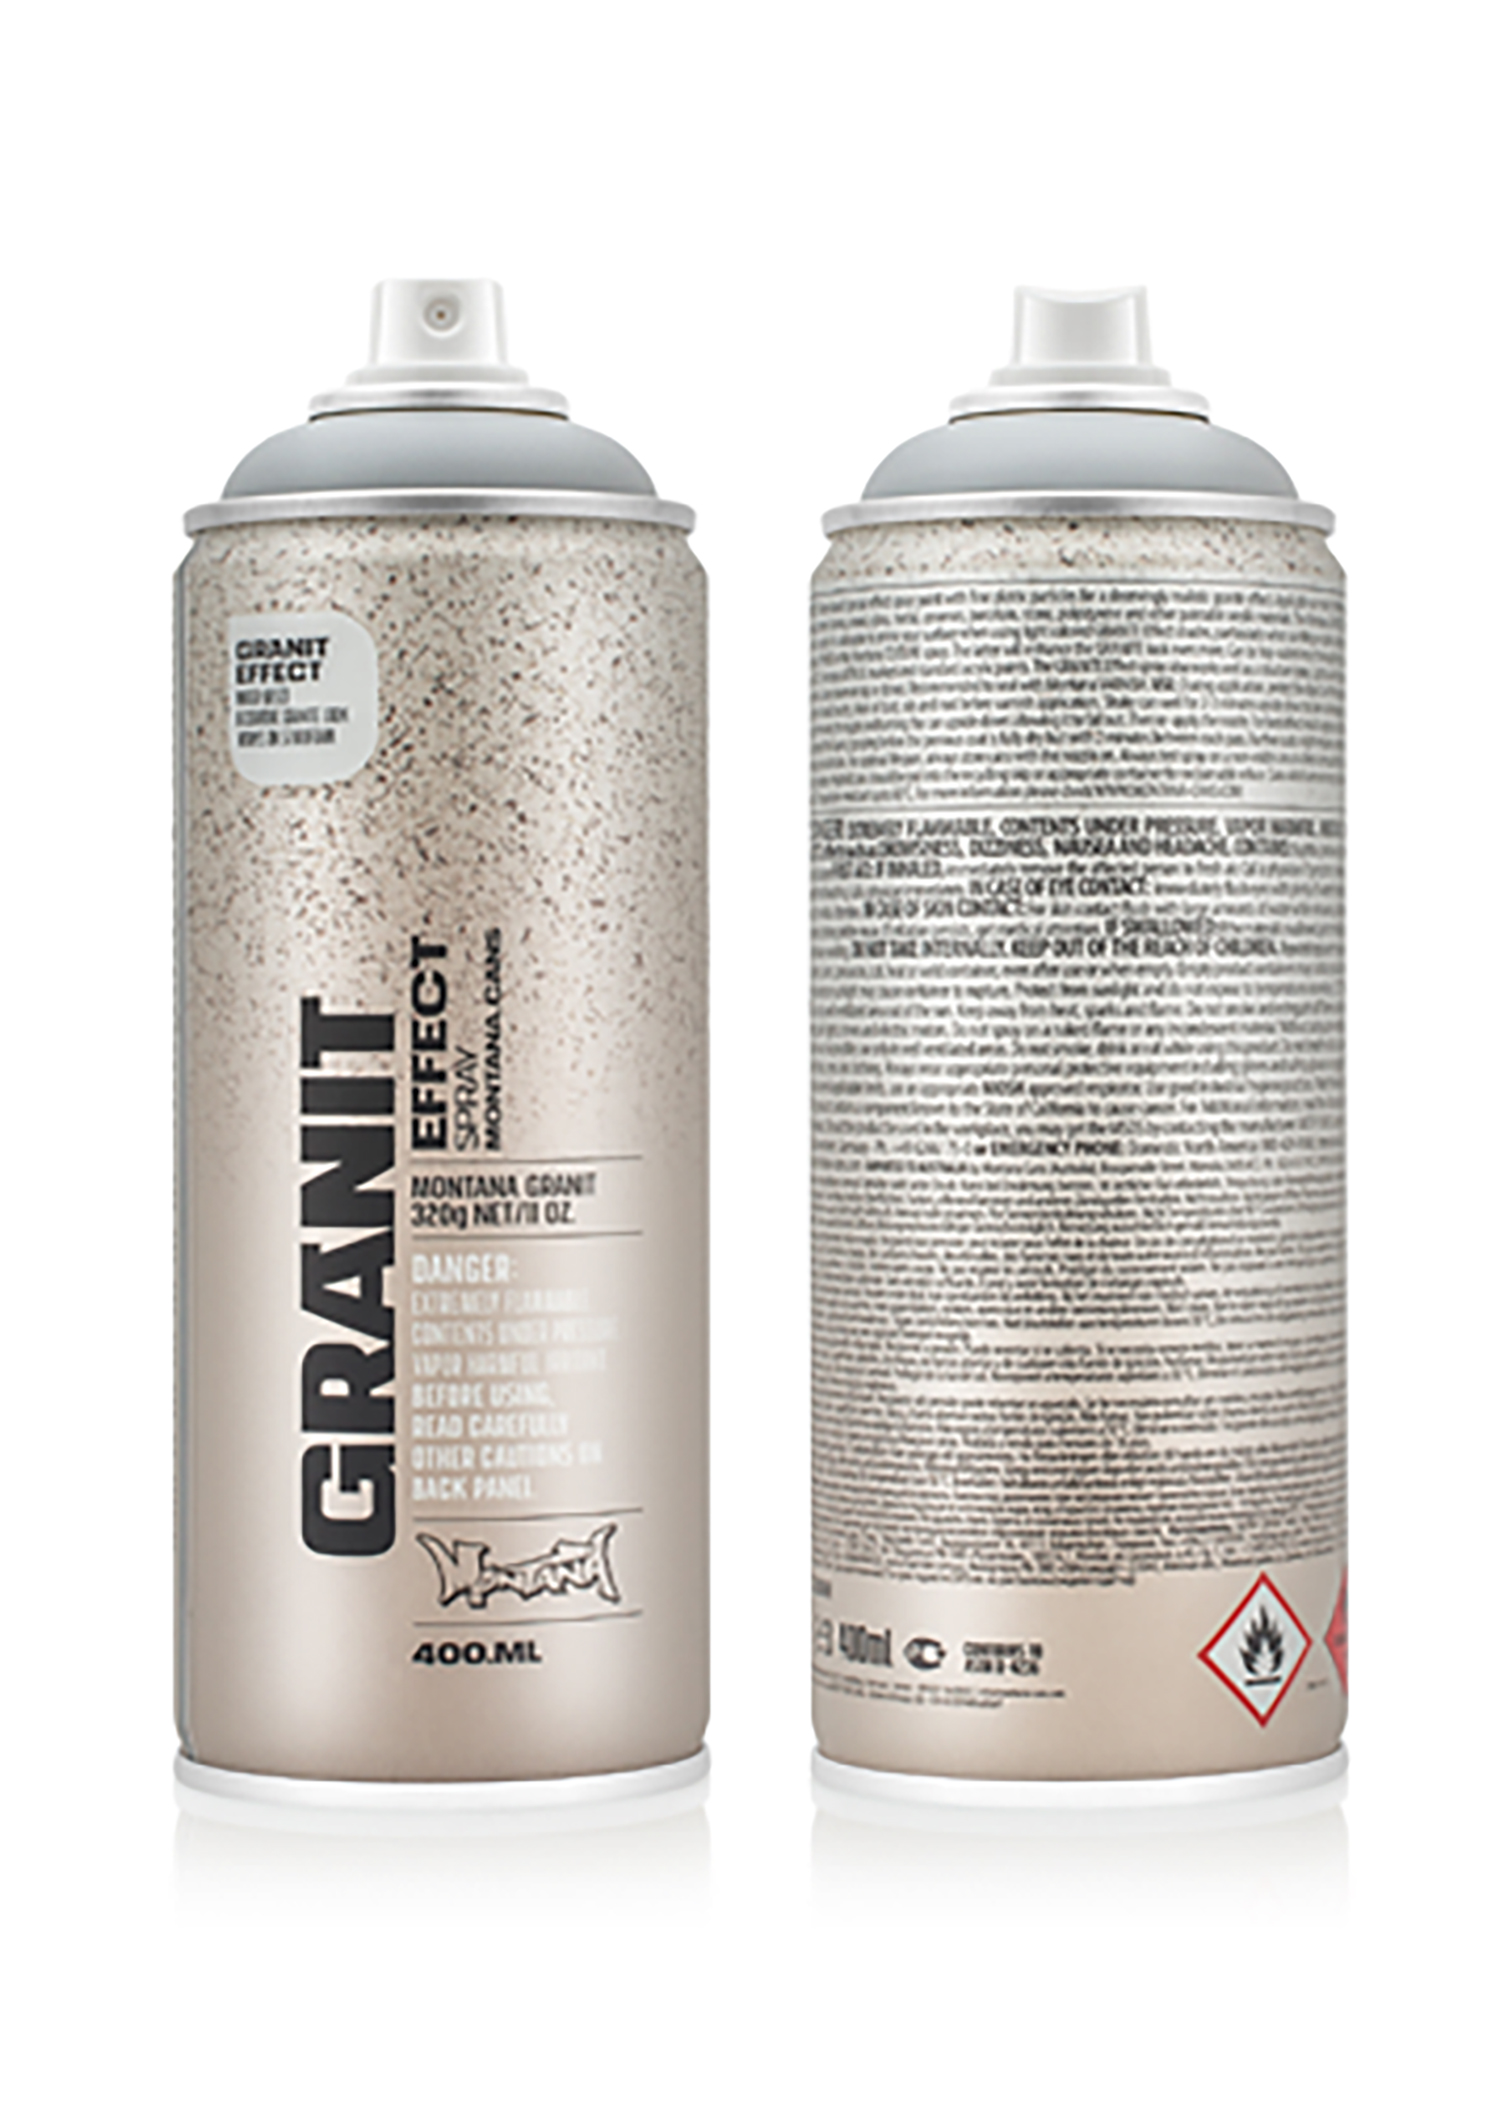 MONTANA-EFFECT-GRANIT-SPRAY-400ML